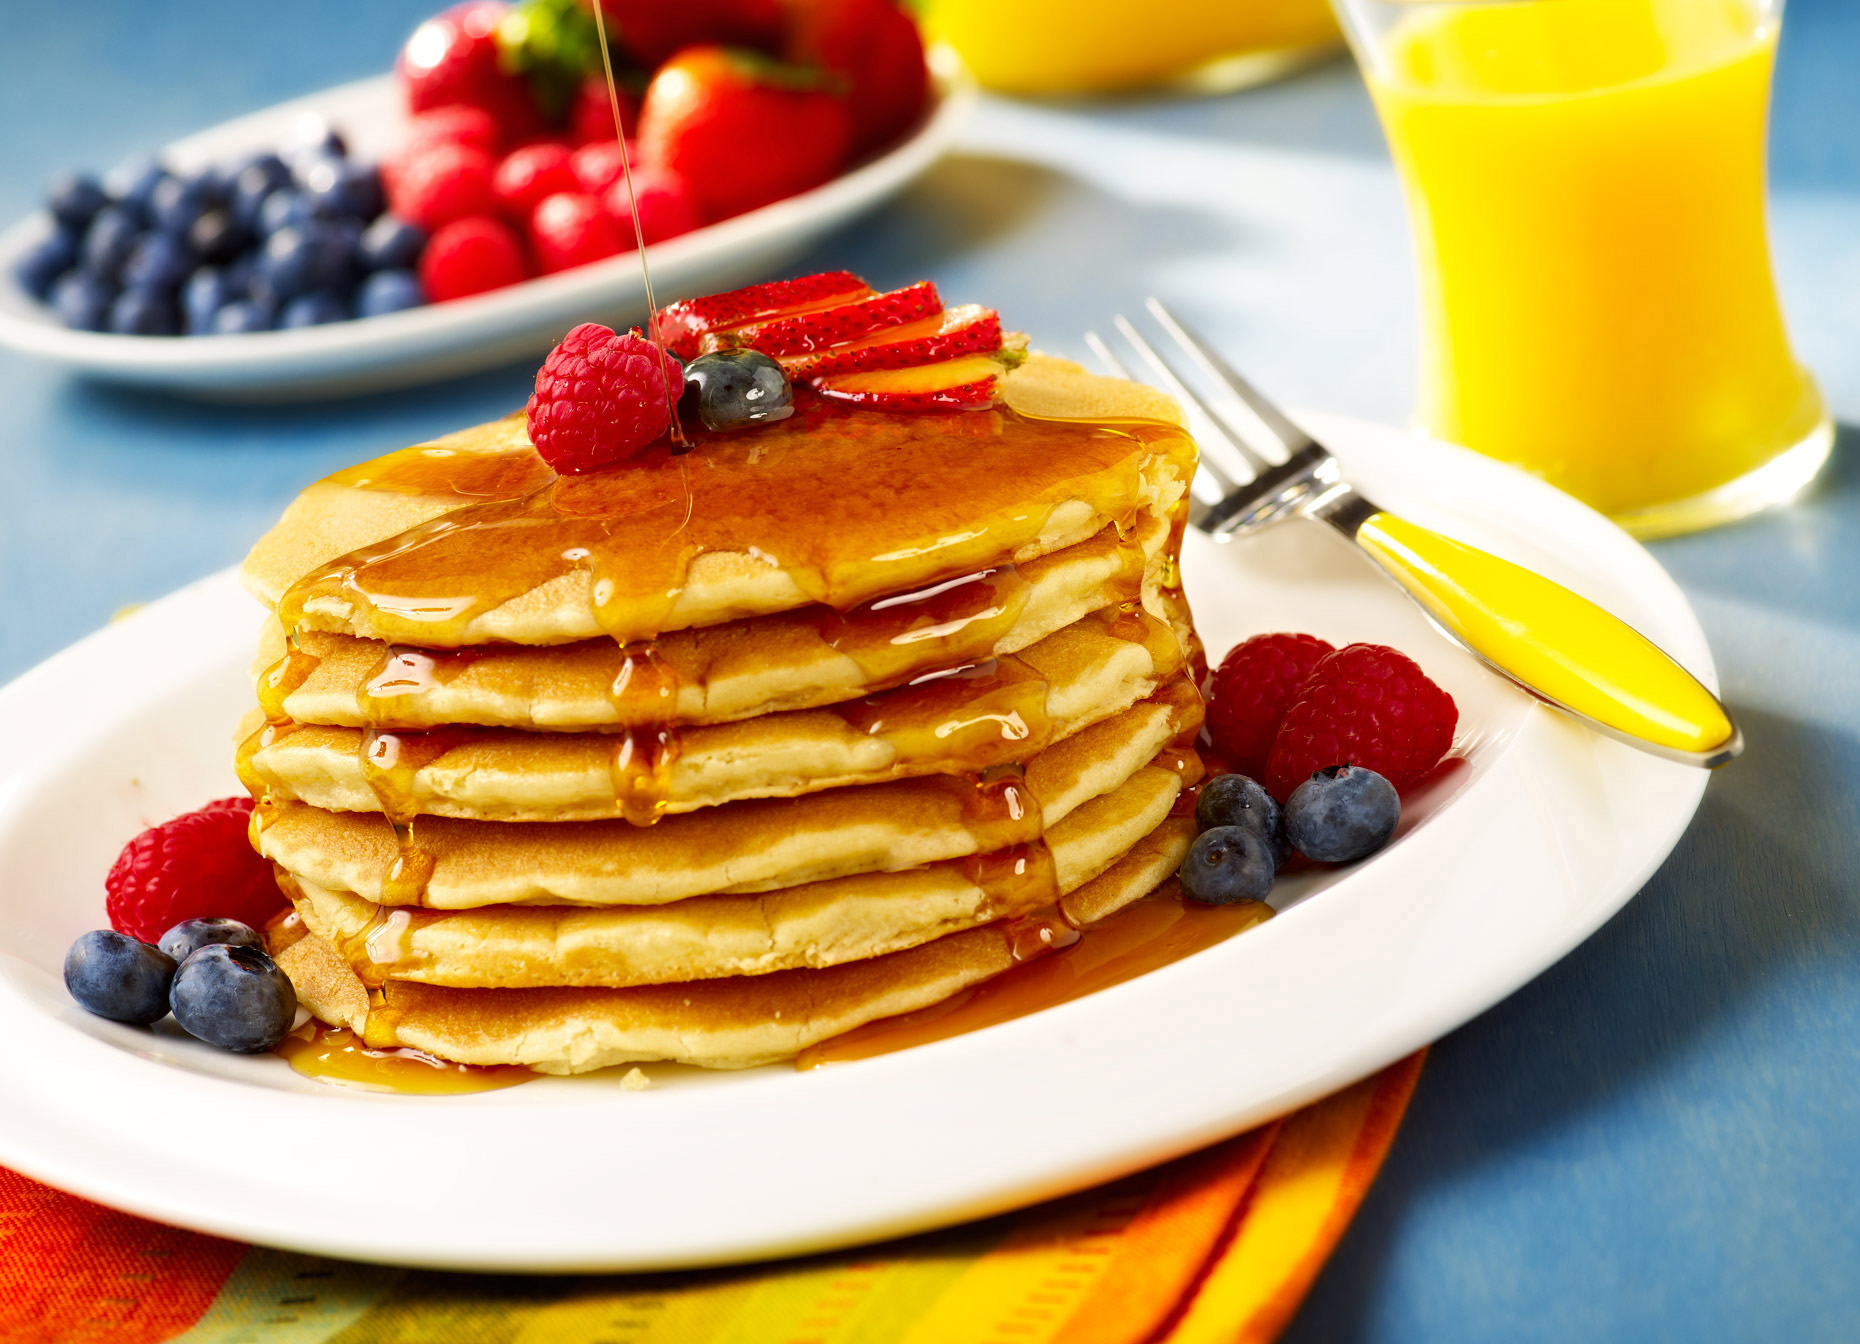 Food & Beverage Photographer | Pancakes with berries & Orange Juice